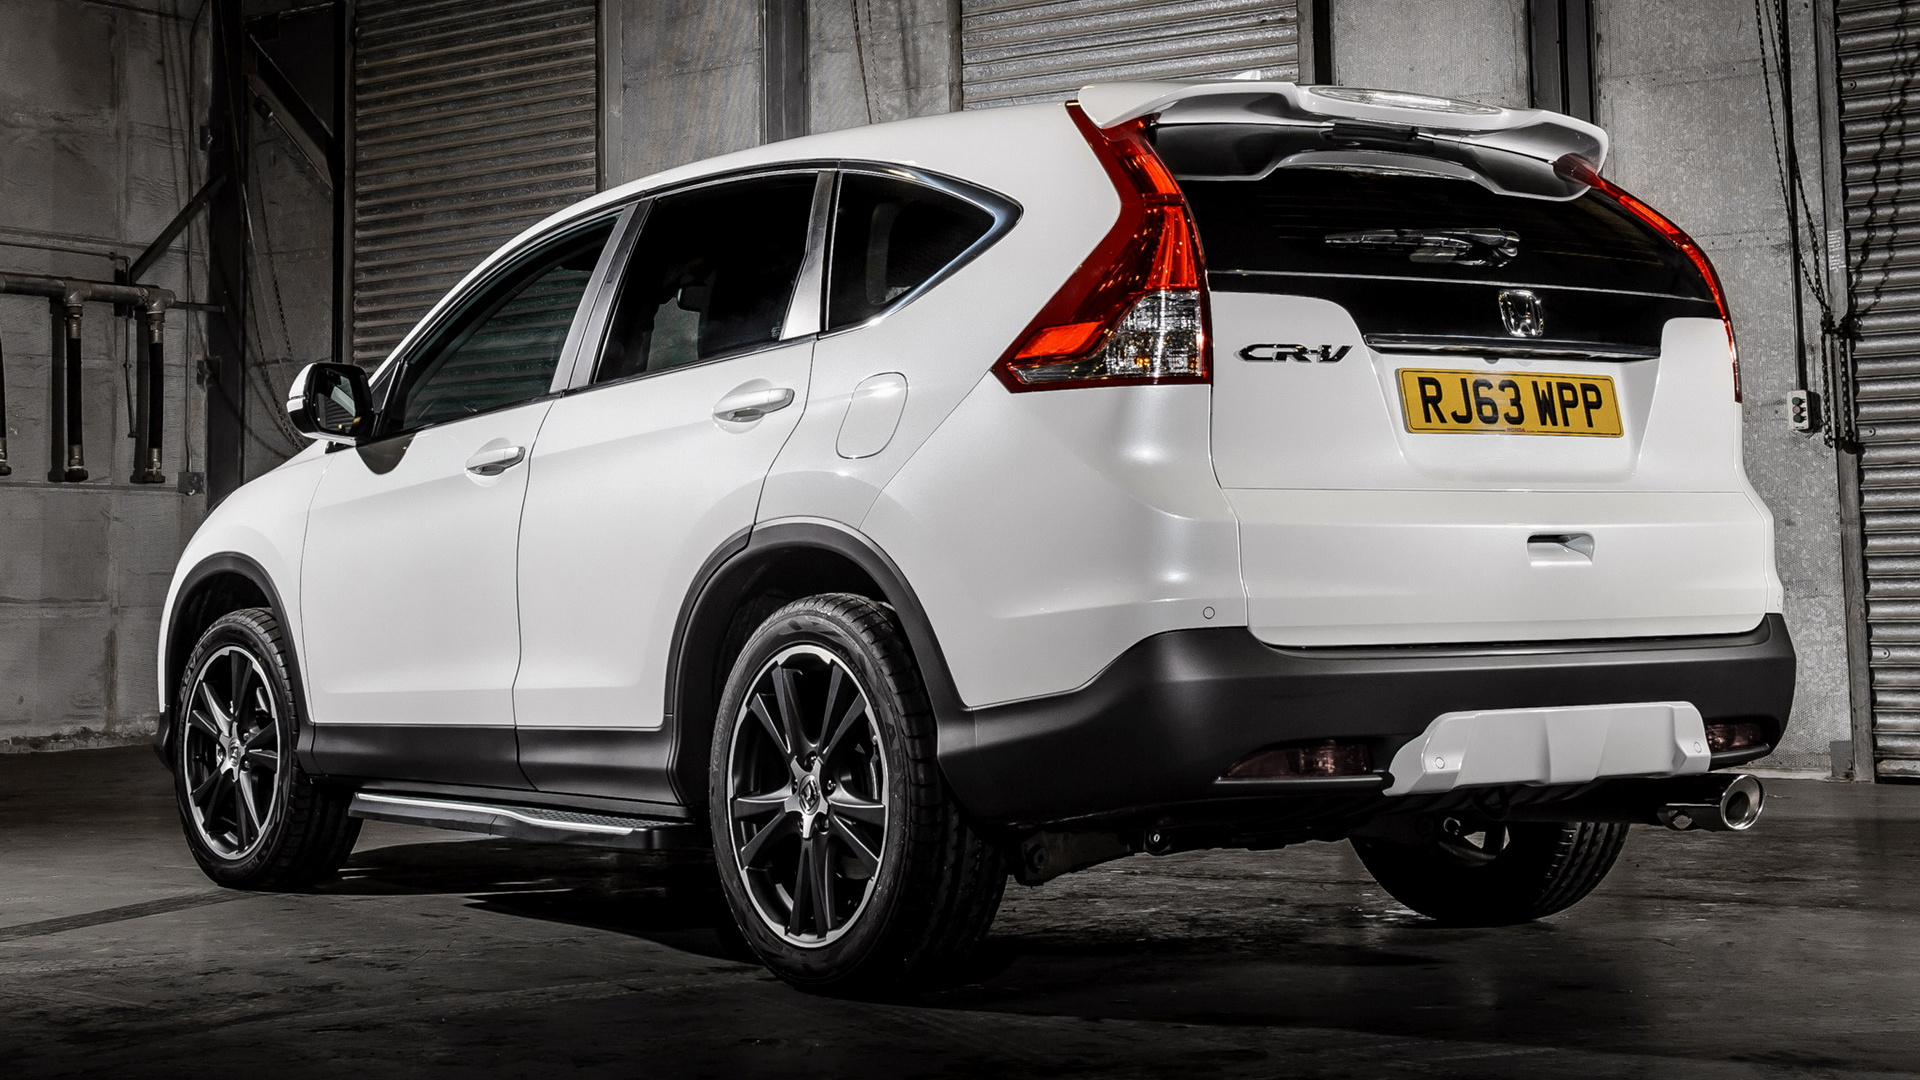 White Land Rover >> 2014 Honda CR-V White - Wallpapers and HD Images | Car Pixel